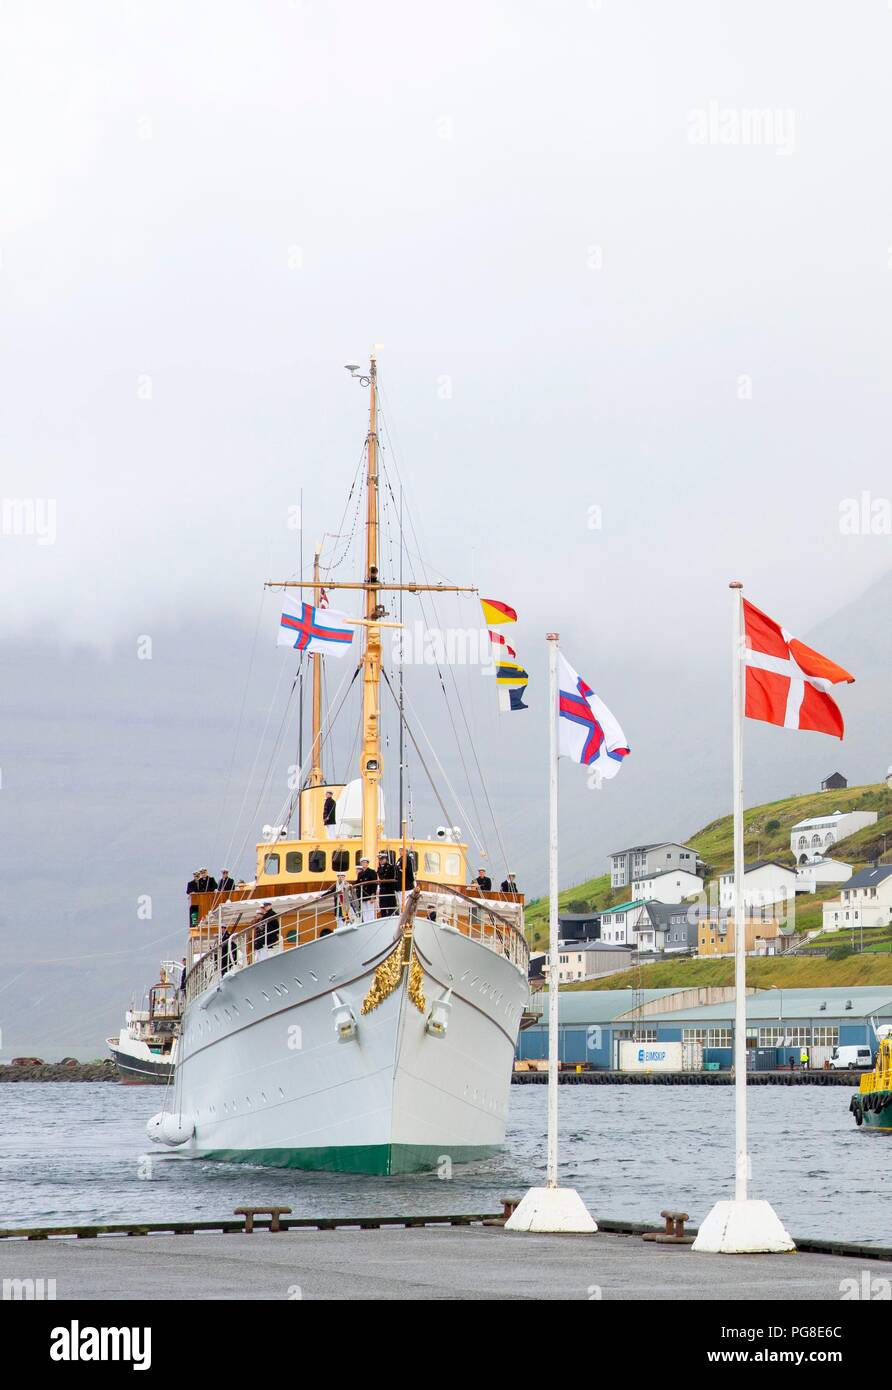 Crown Prince Frederik, Crown Princess Mary, Prince Christian, Princess Isabella, Prince Vincent and Princess Josehpine of Denmark arrive with the The Royal Ship, HDMY Dannebrog at the harbour of Klaksvík, on August 24, 2018, on the 2nd of the 4 days visit to the Faroe Islands Photo : Albert Nieboer/ Netherlands OUT/Point de Vue OUT | - Stock Image